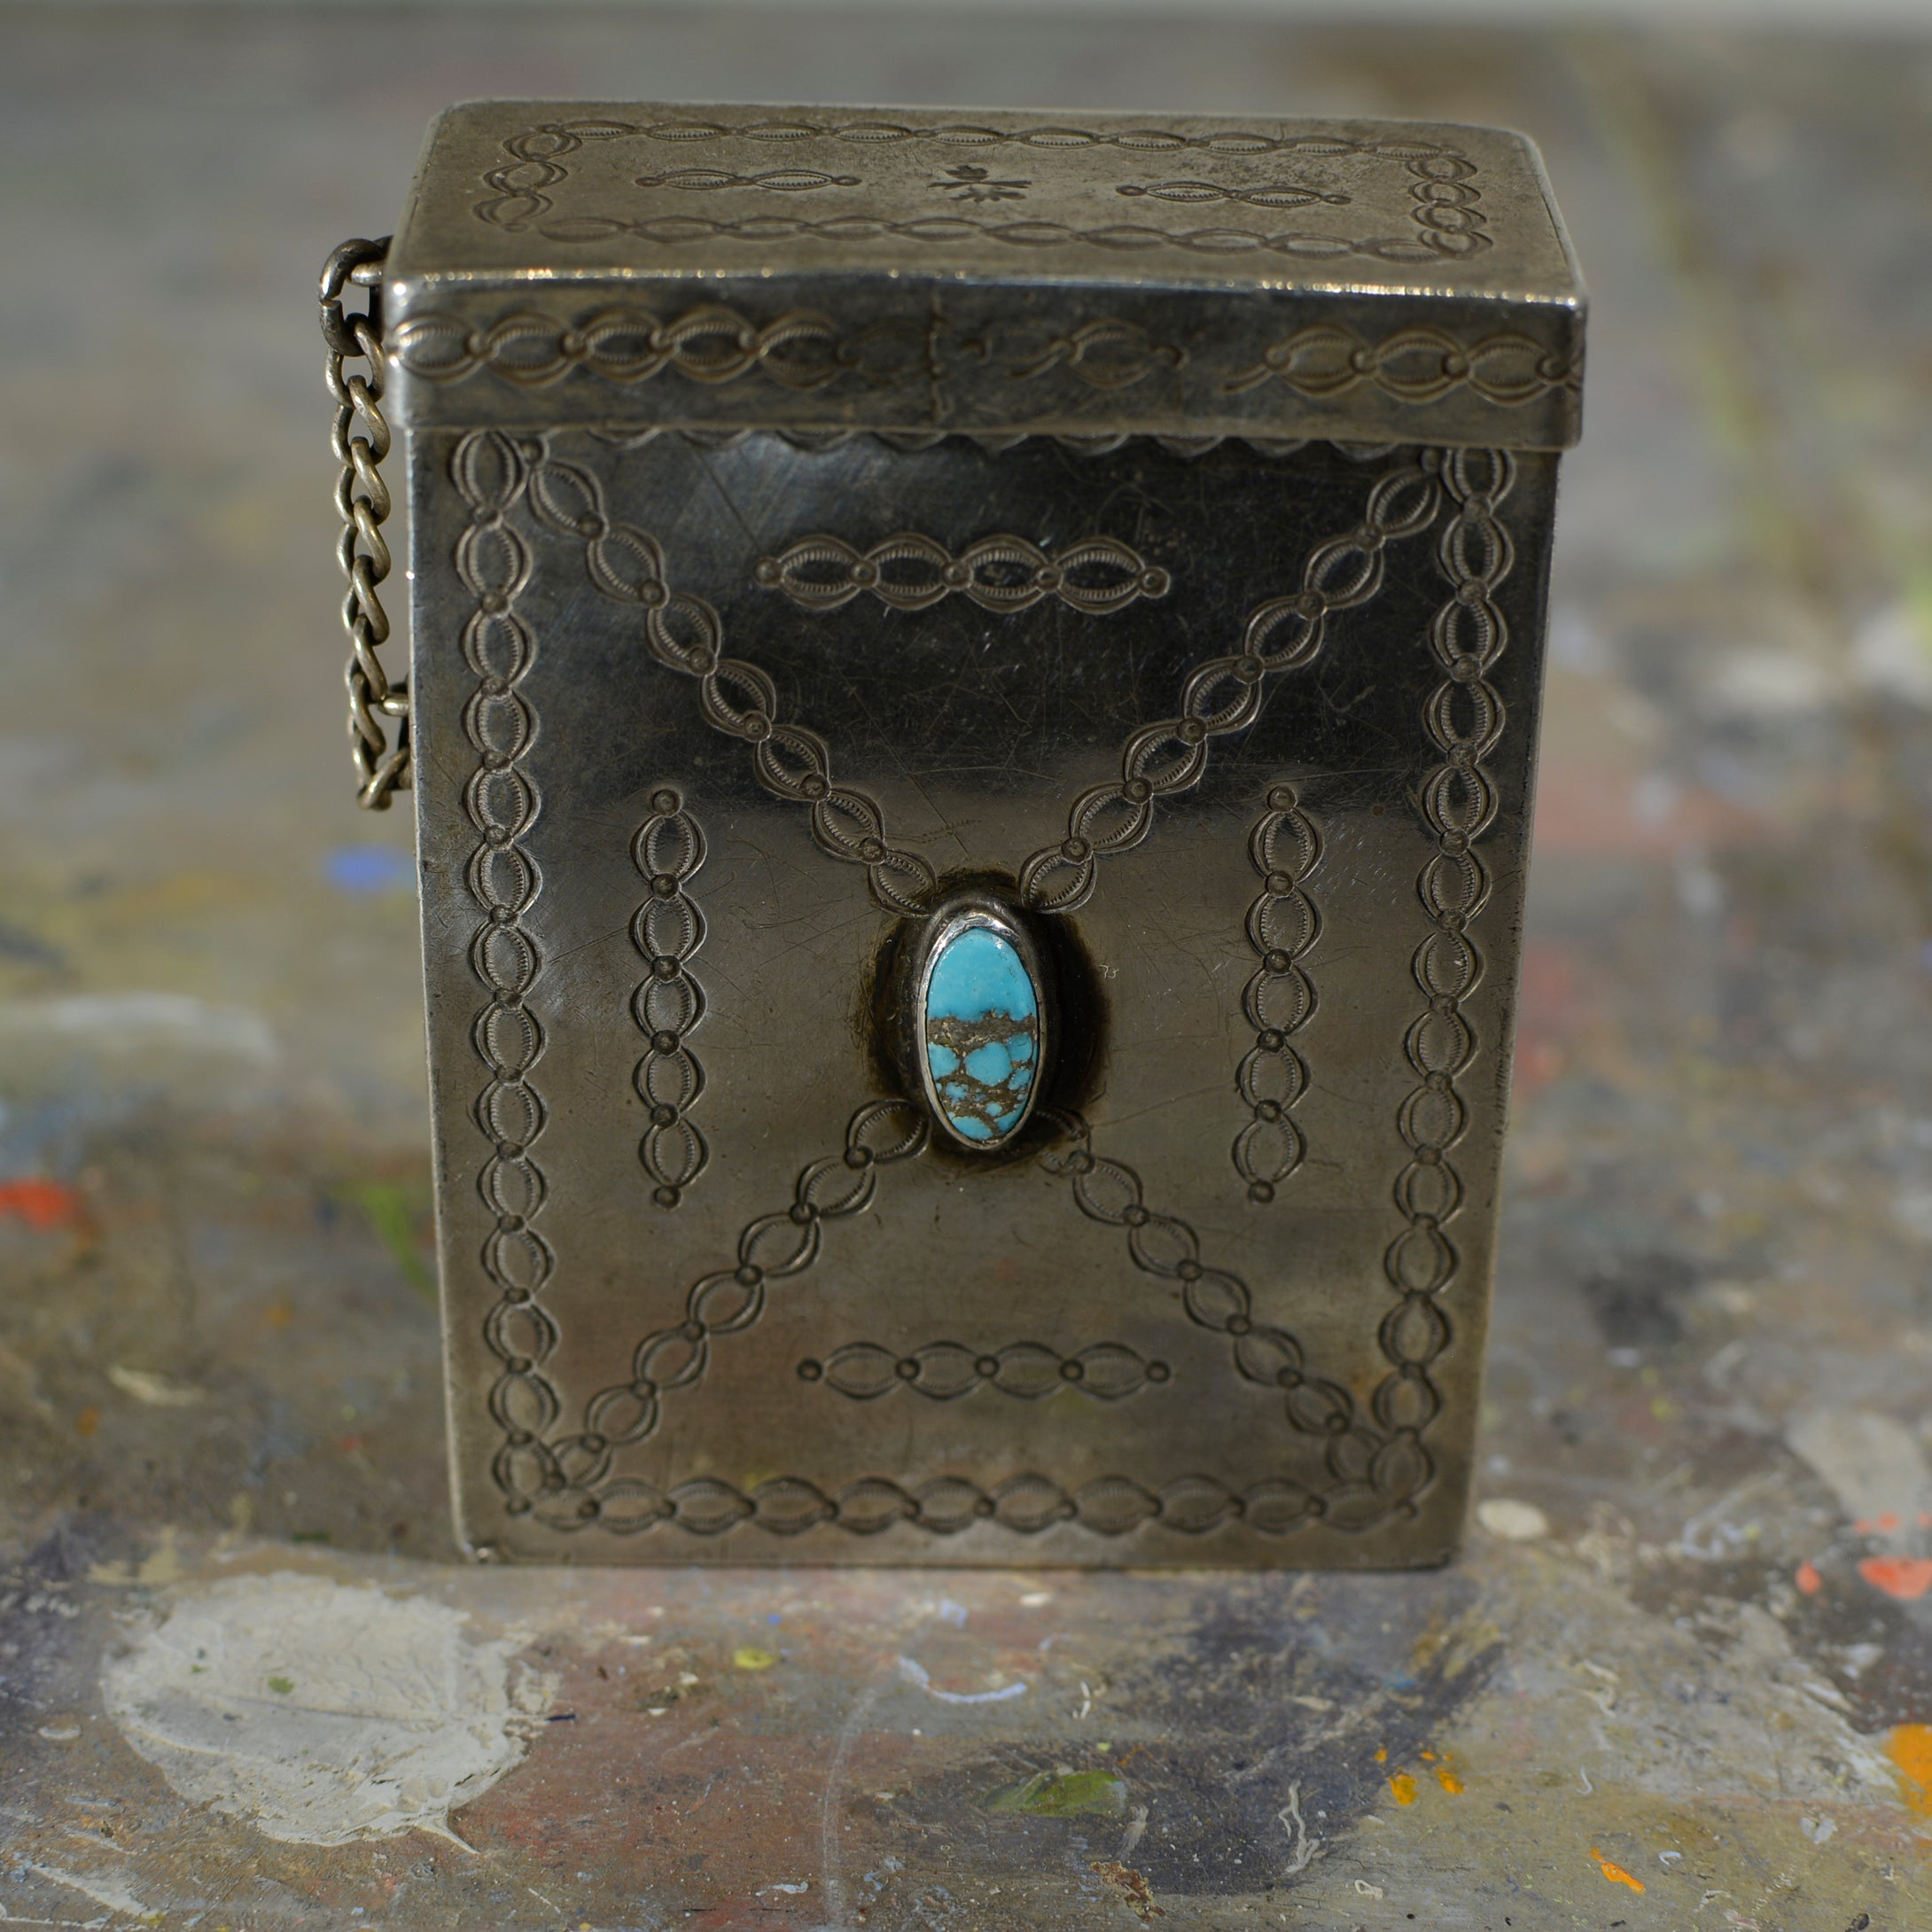 Silver and turquoise cigarette case.